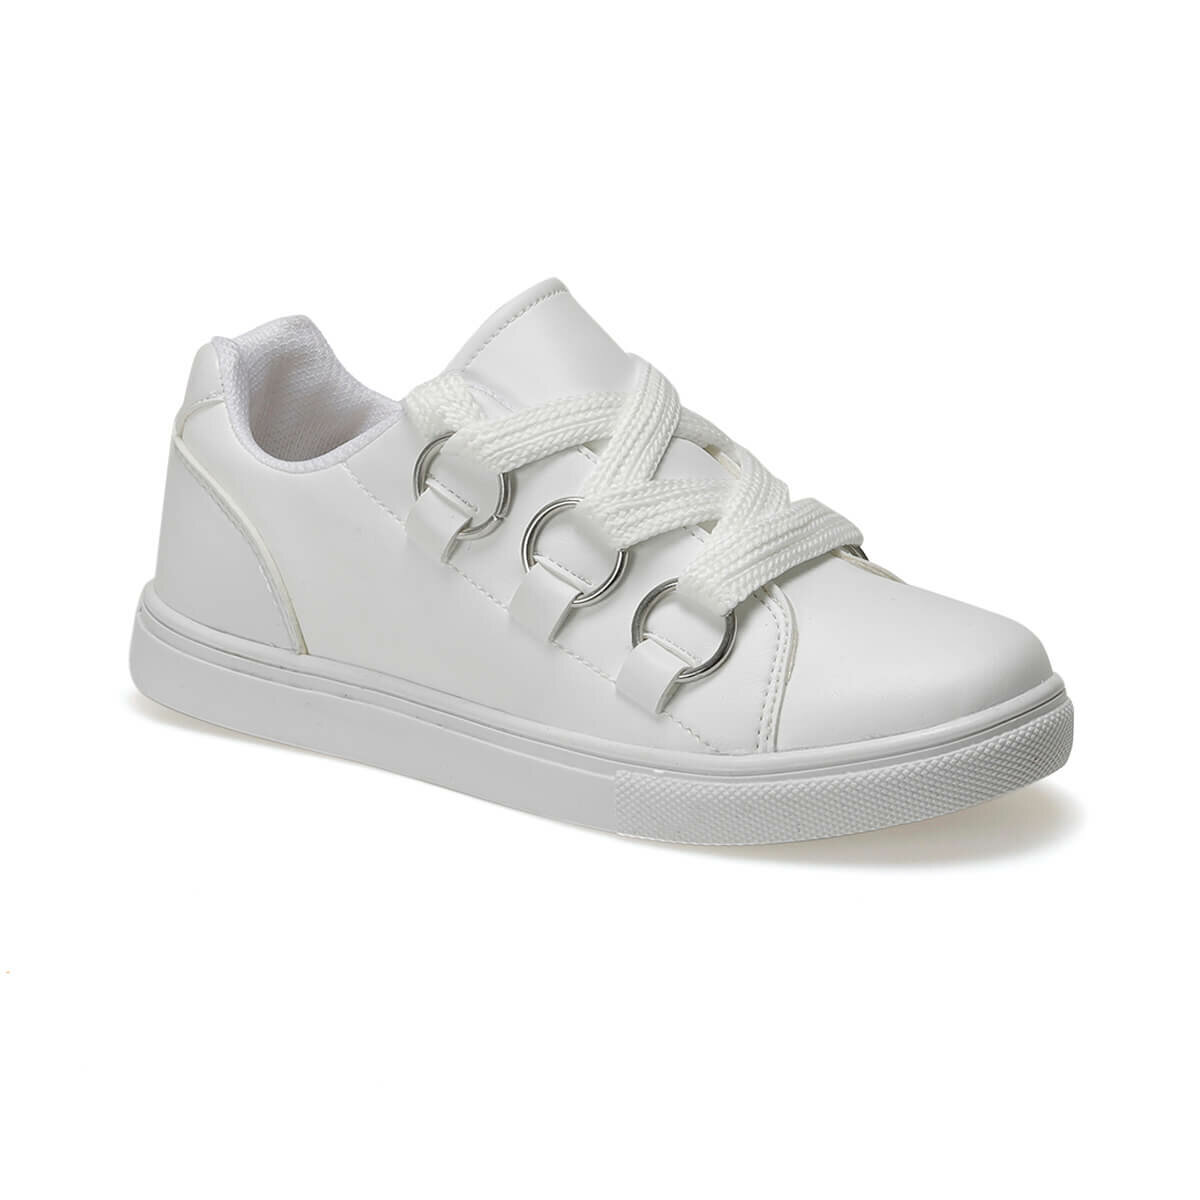 FLO HAWAII White Female Child Sneaker Shoes I-Cool